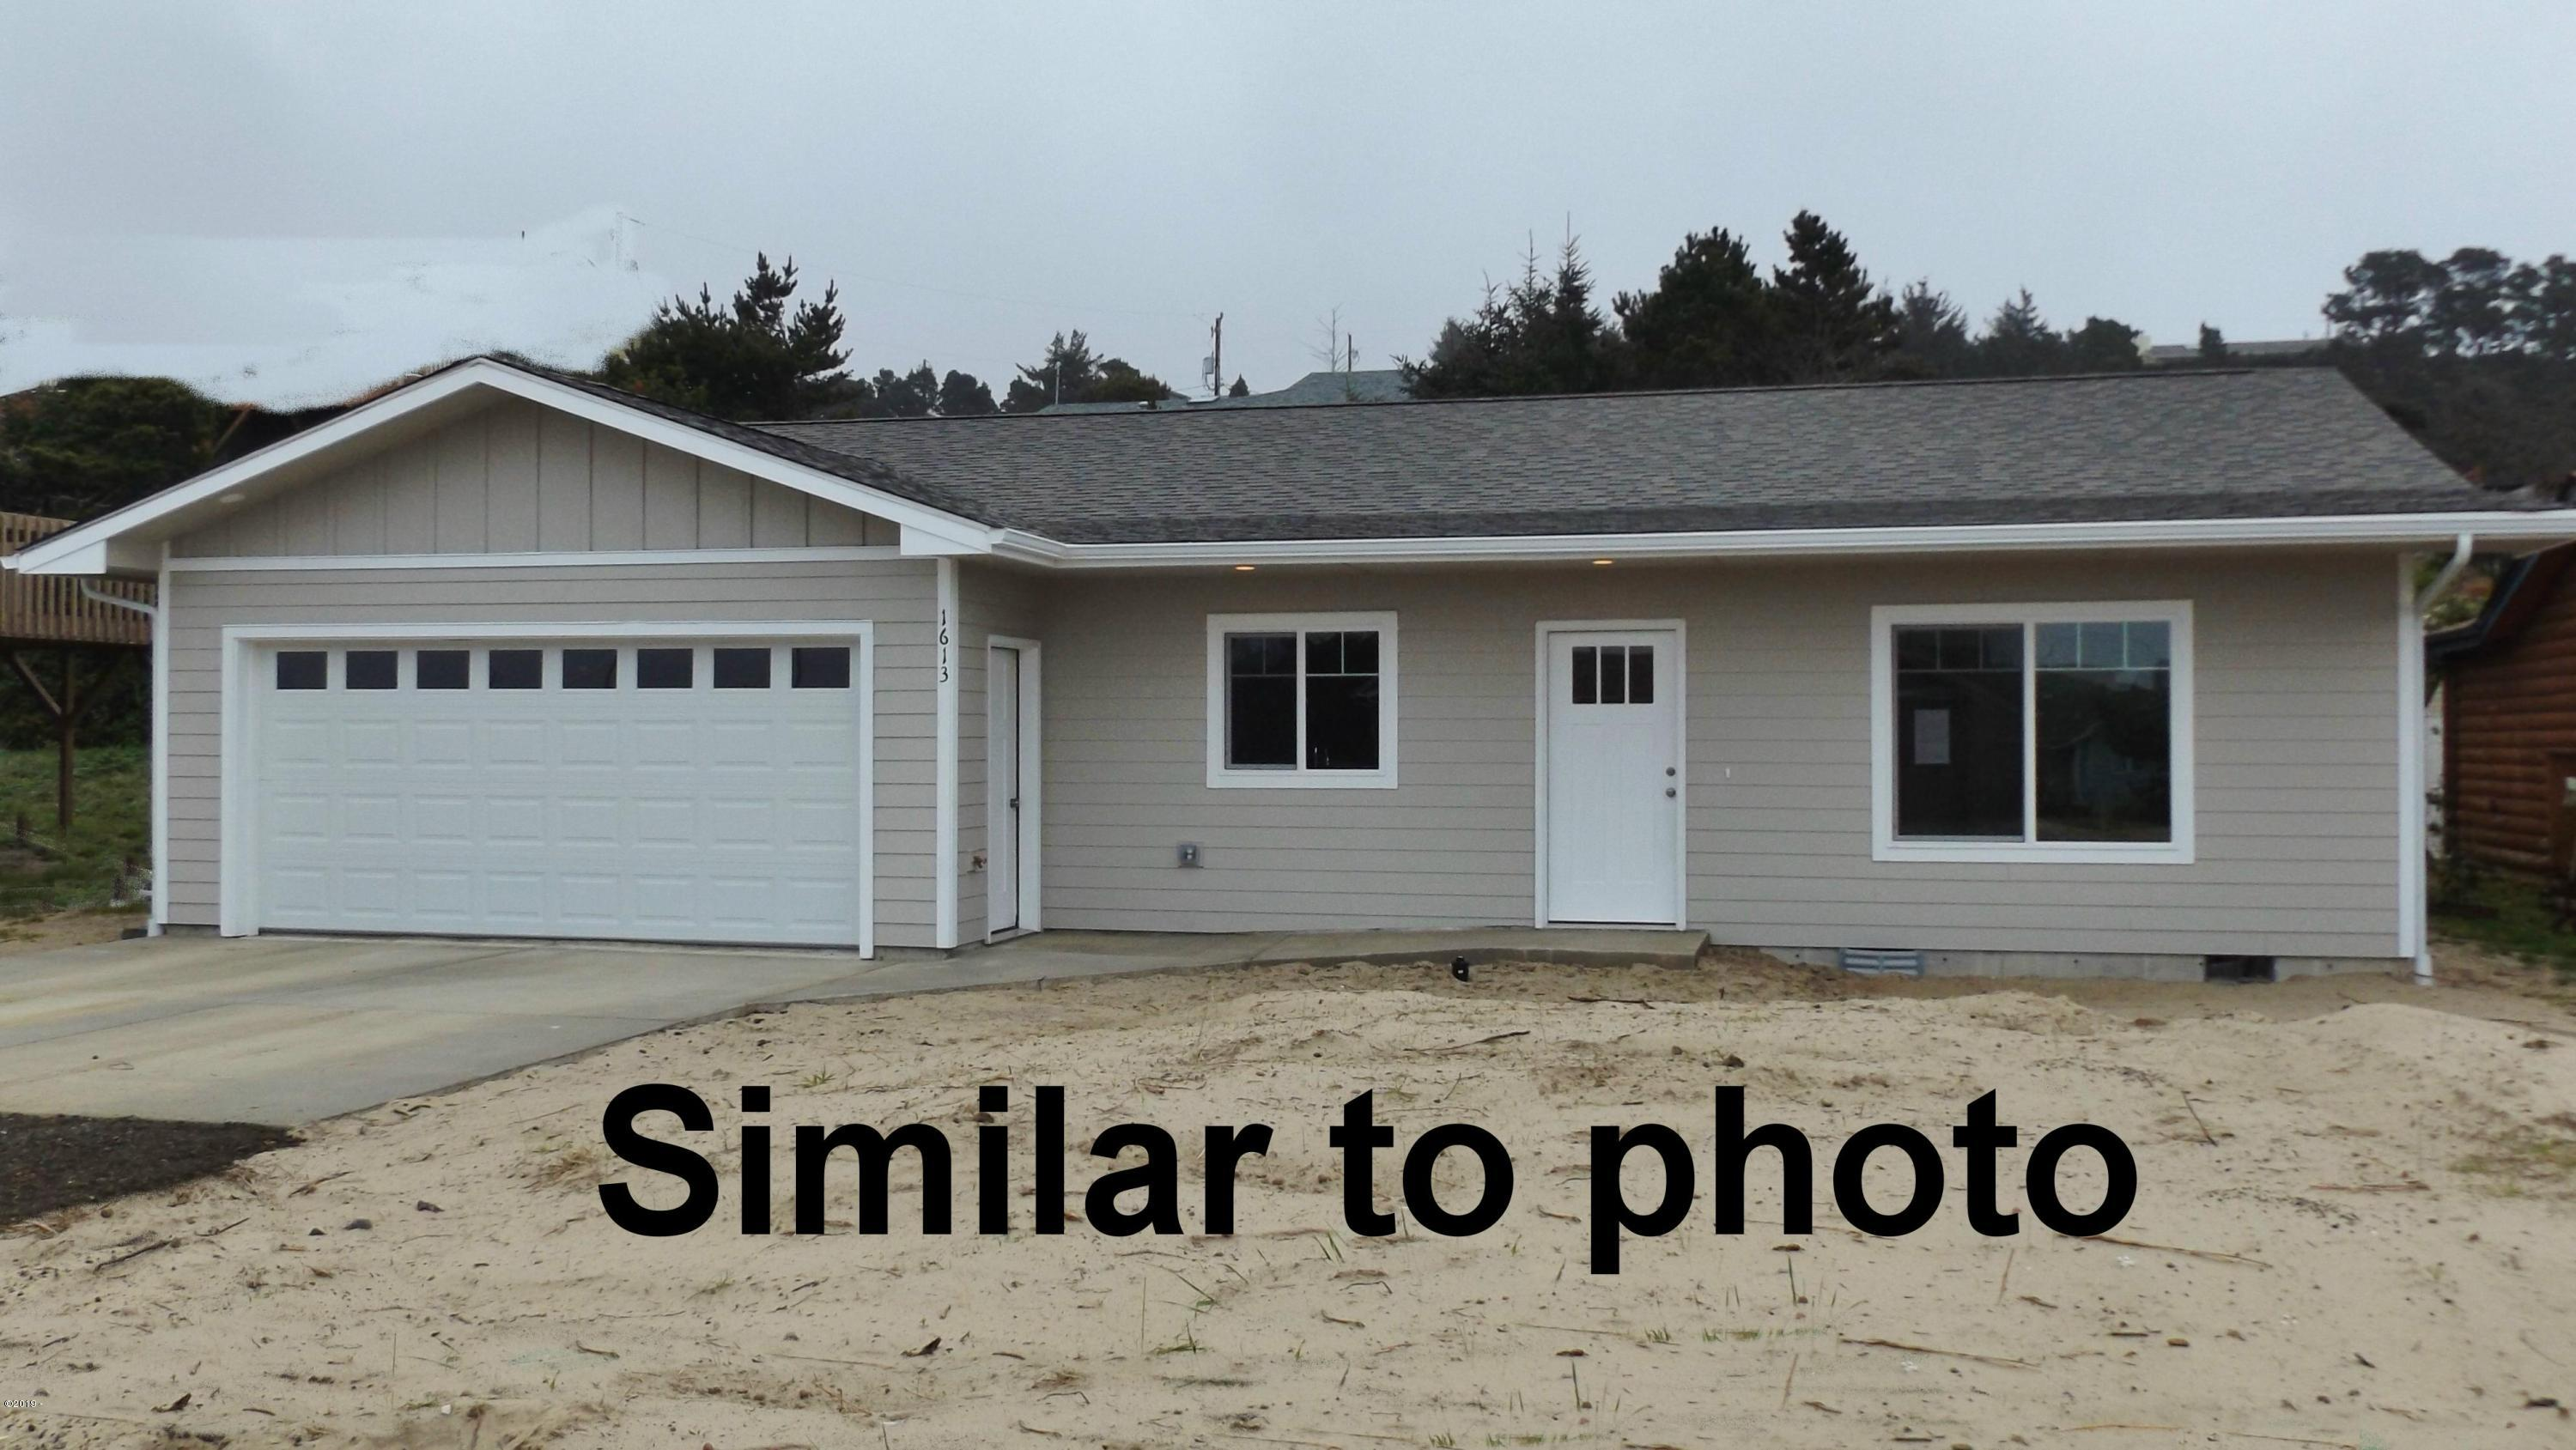 2810 NW Bayshore Loop, Waldport, OR 97394 - Similar to photo